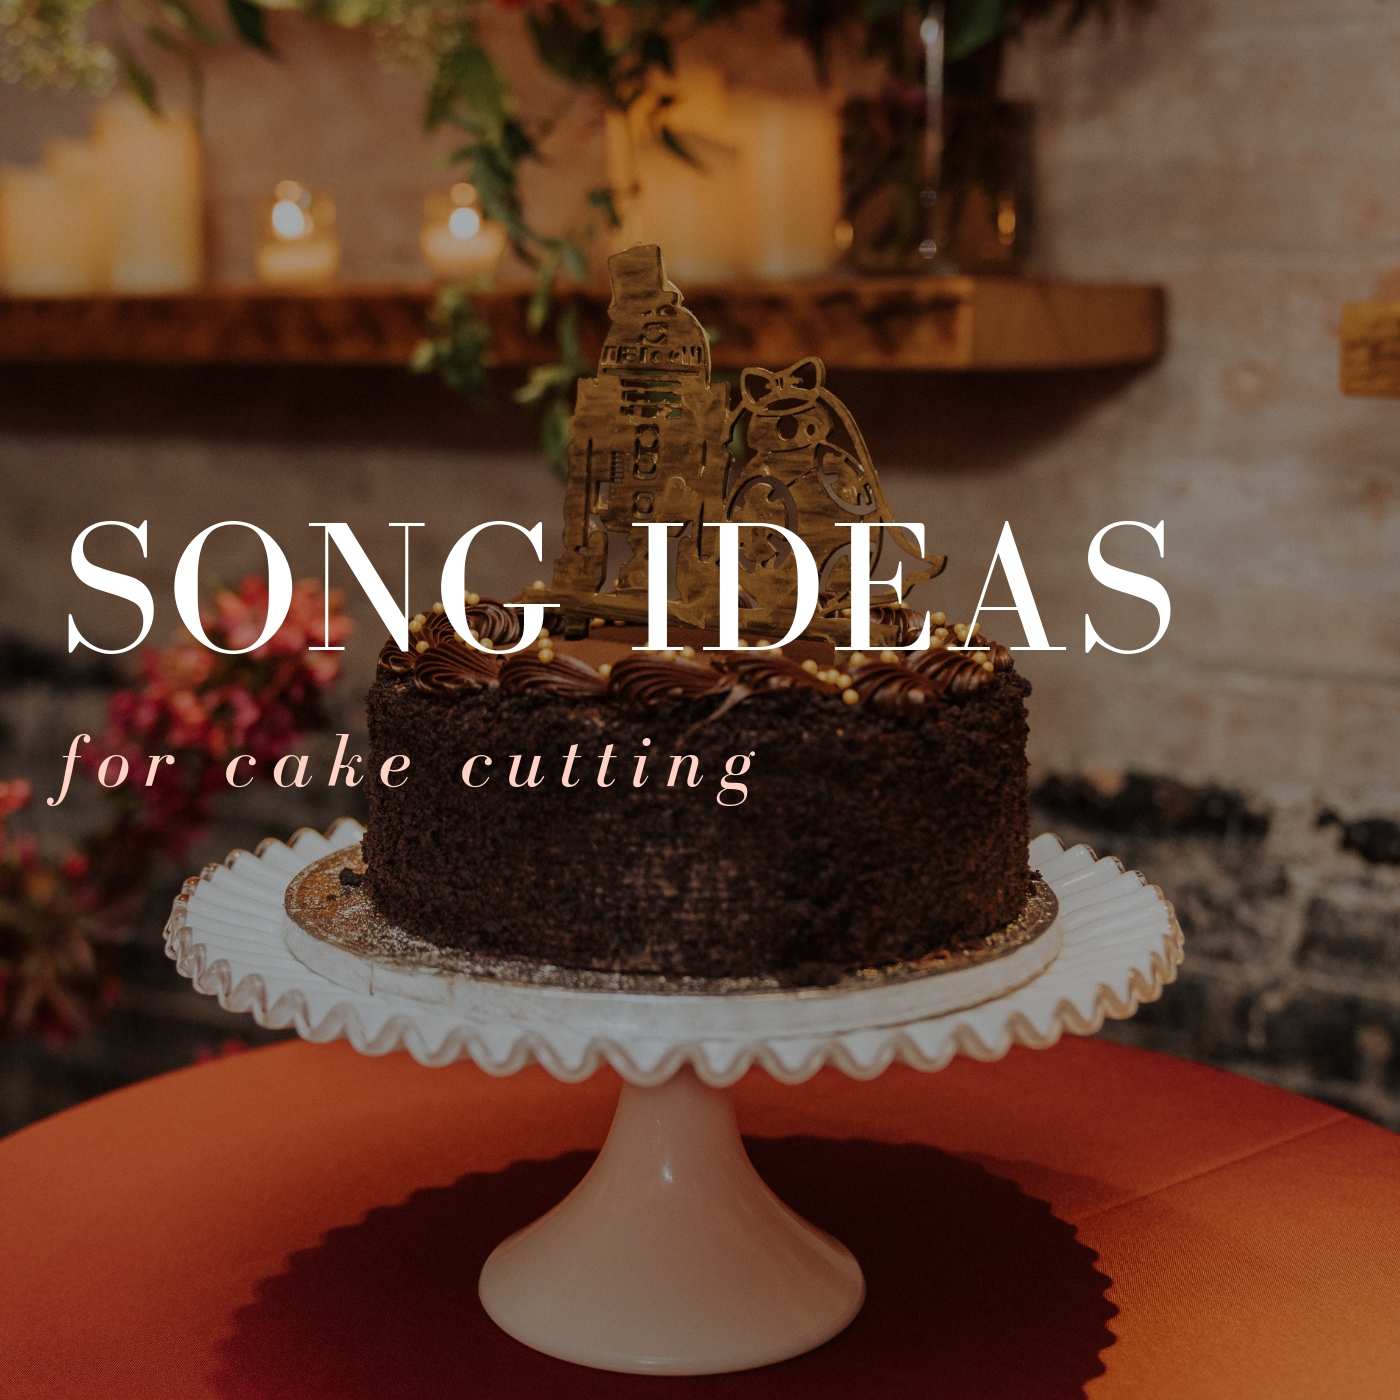 Cake Cutting Song Ideas